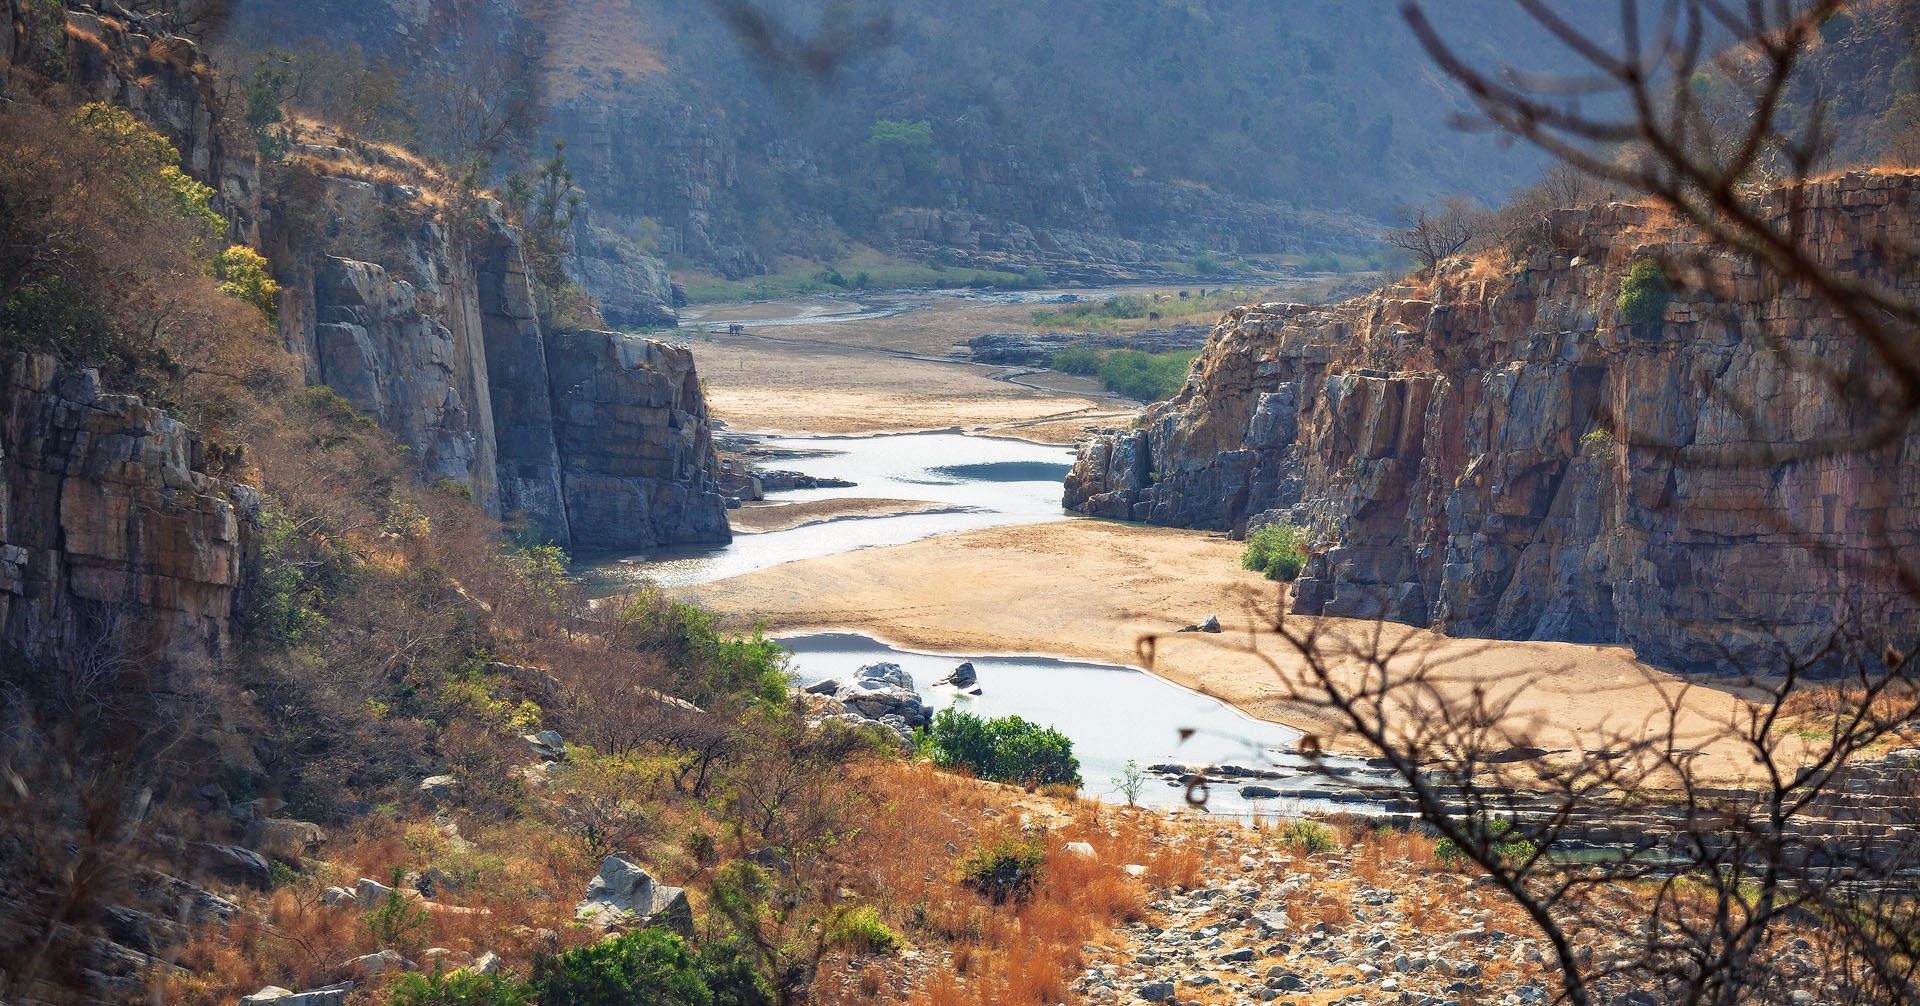 The eastern section of the White Umfolozi Gorge